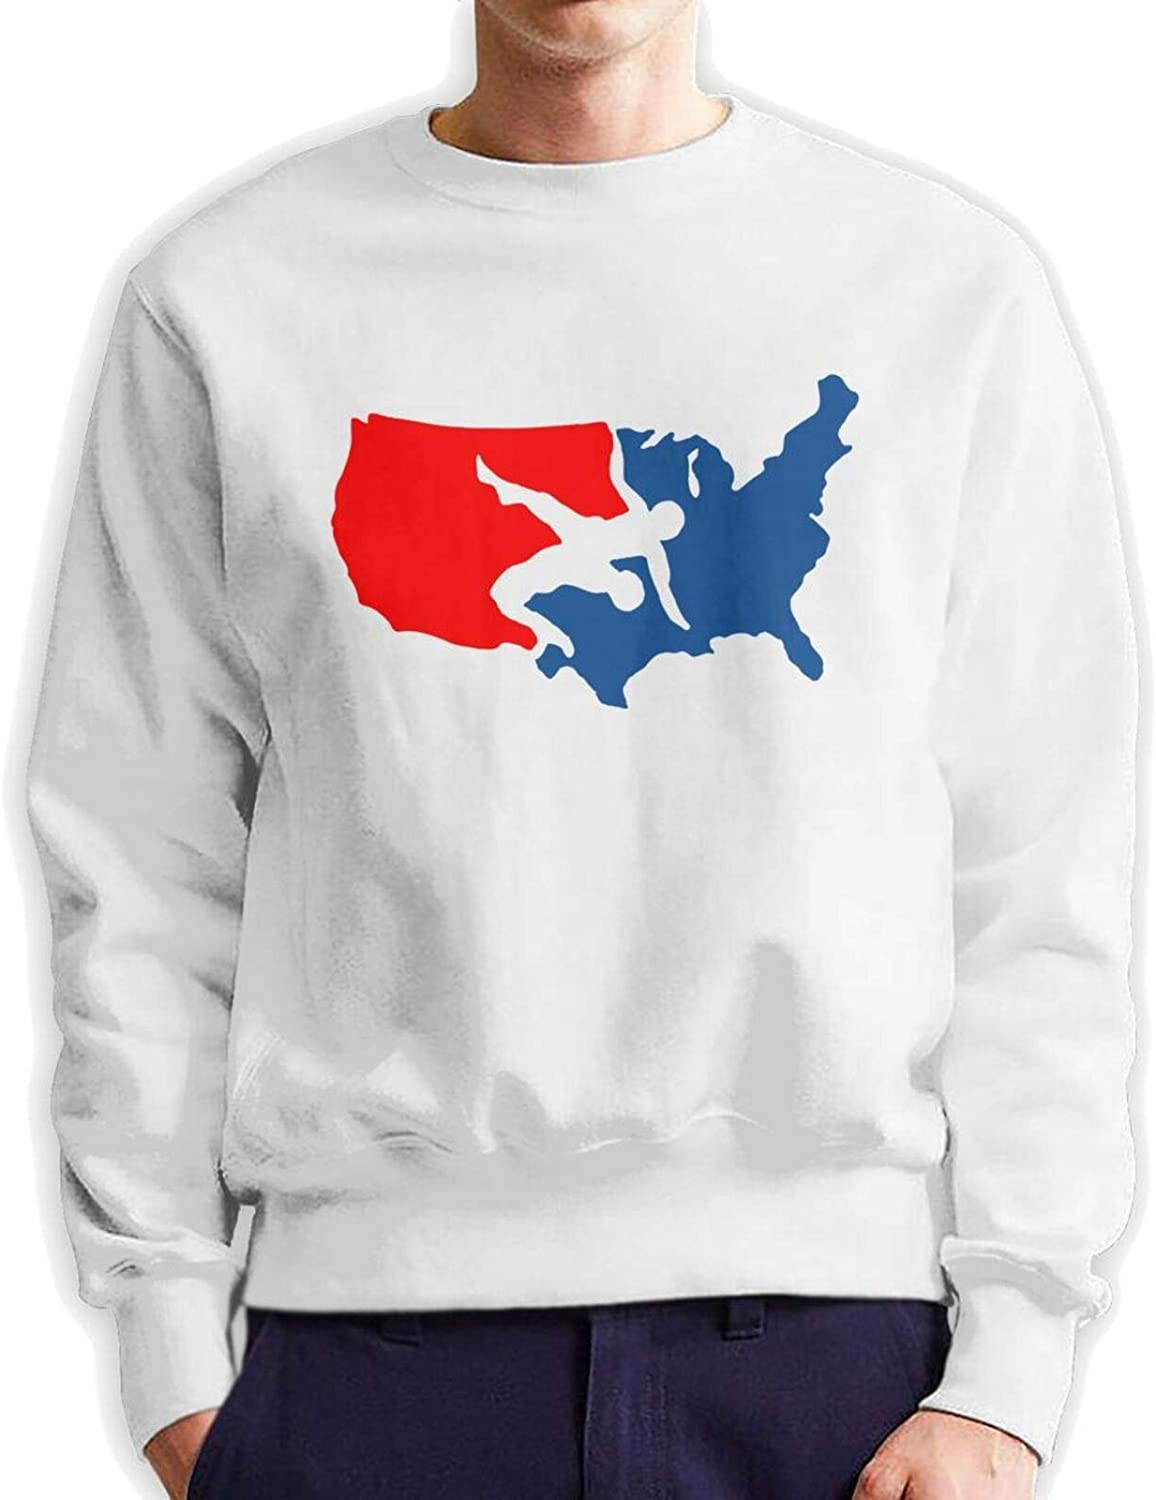 USA Wrestling Men's Top 40% OFF Cheap Sale Max 74% OFF T Pullover Sweatshi Shirts Hooded Fleece